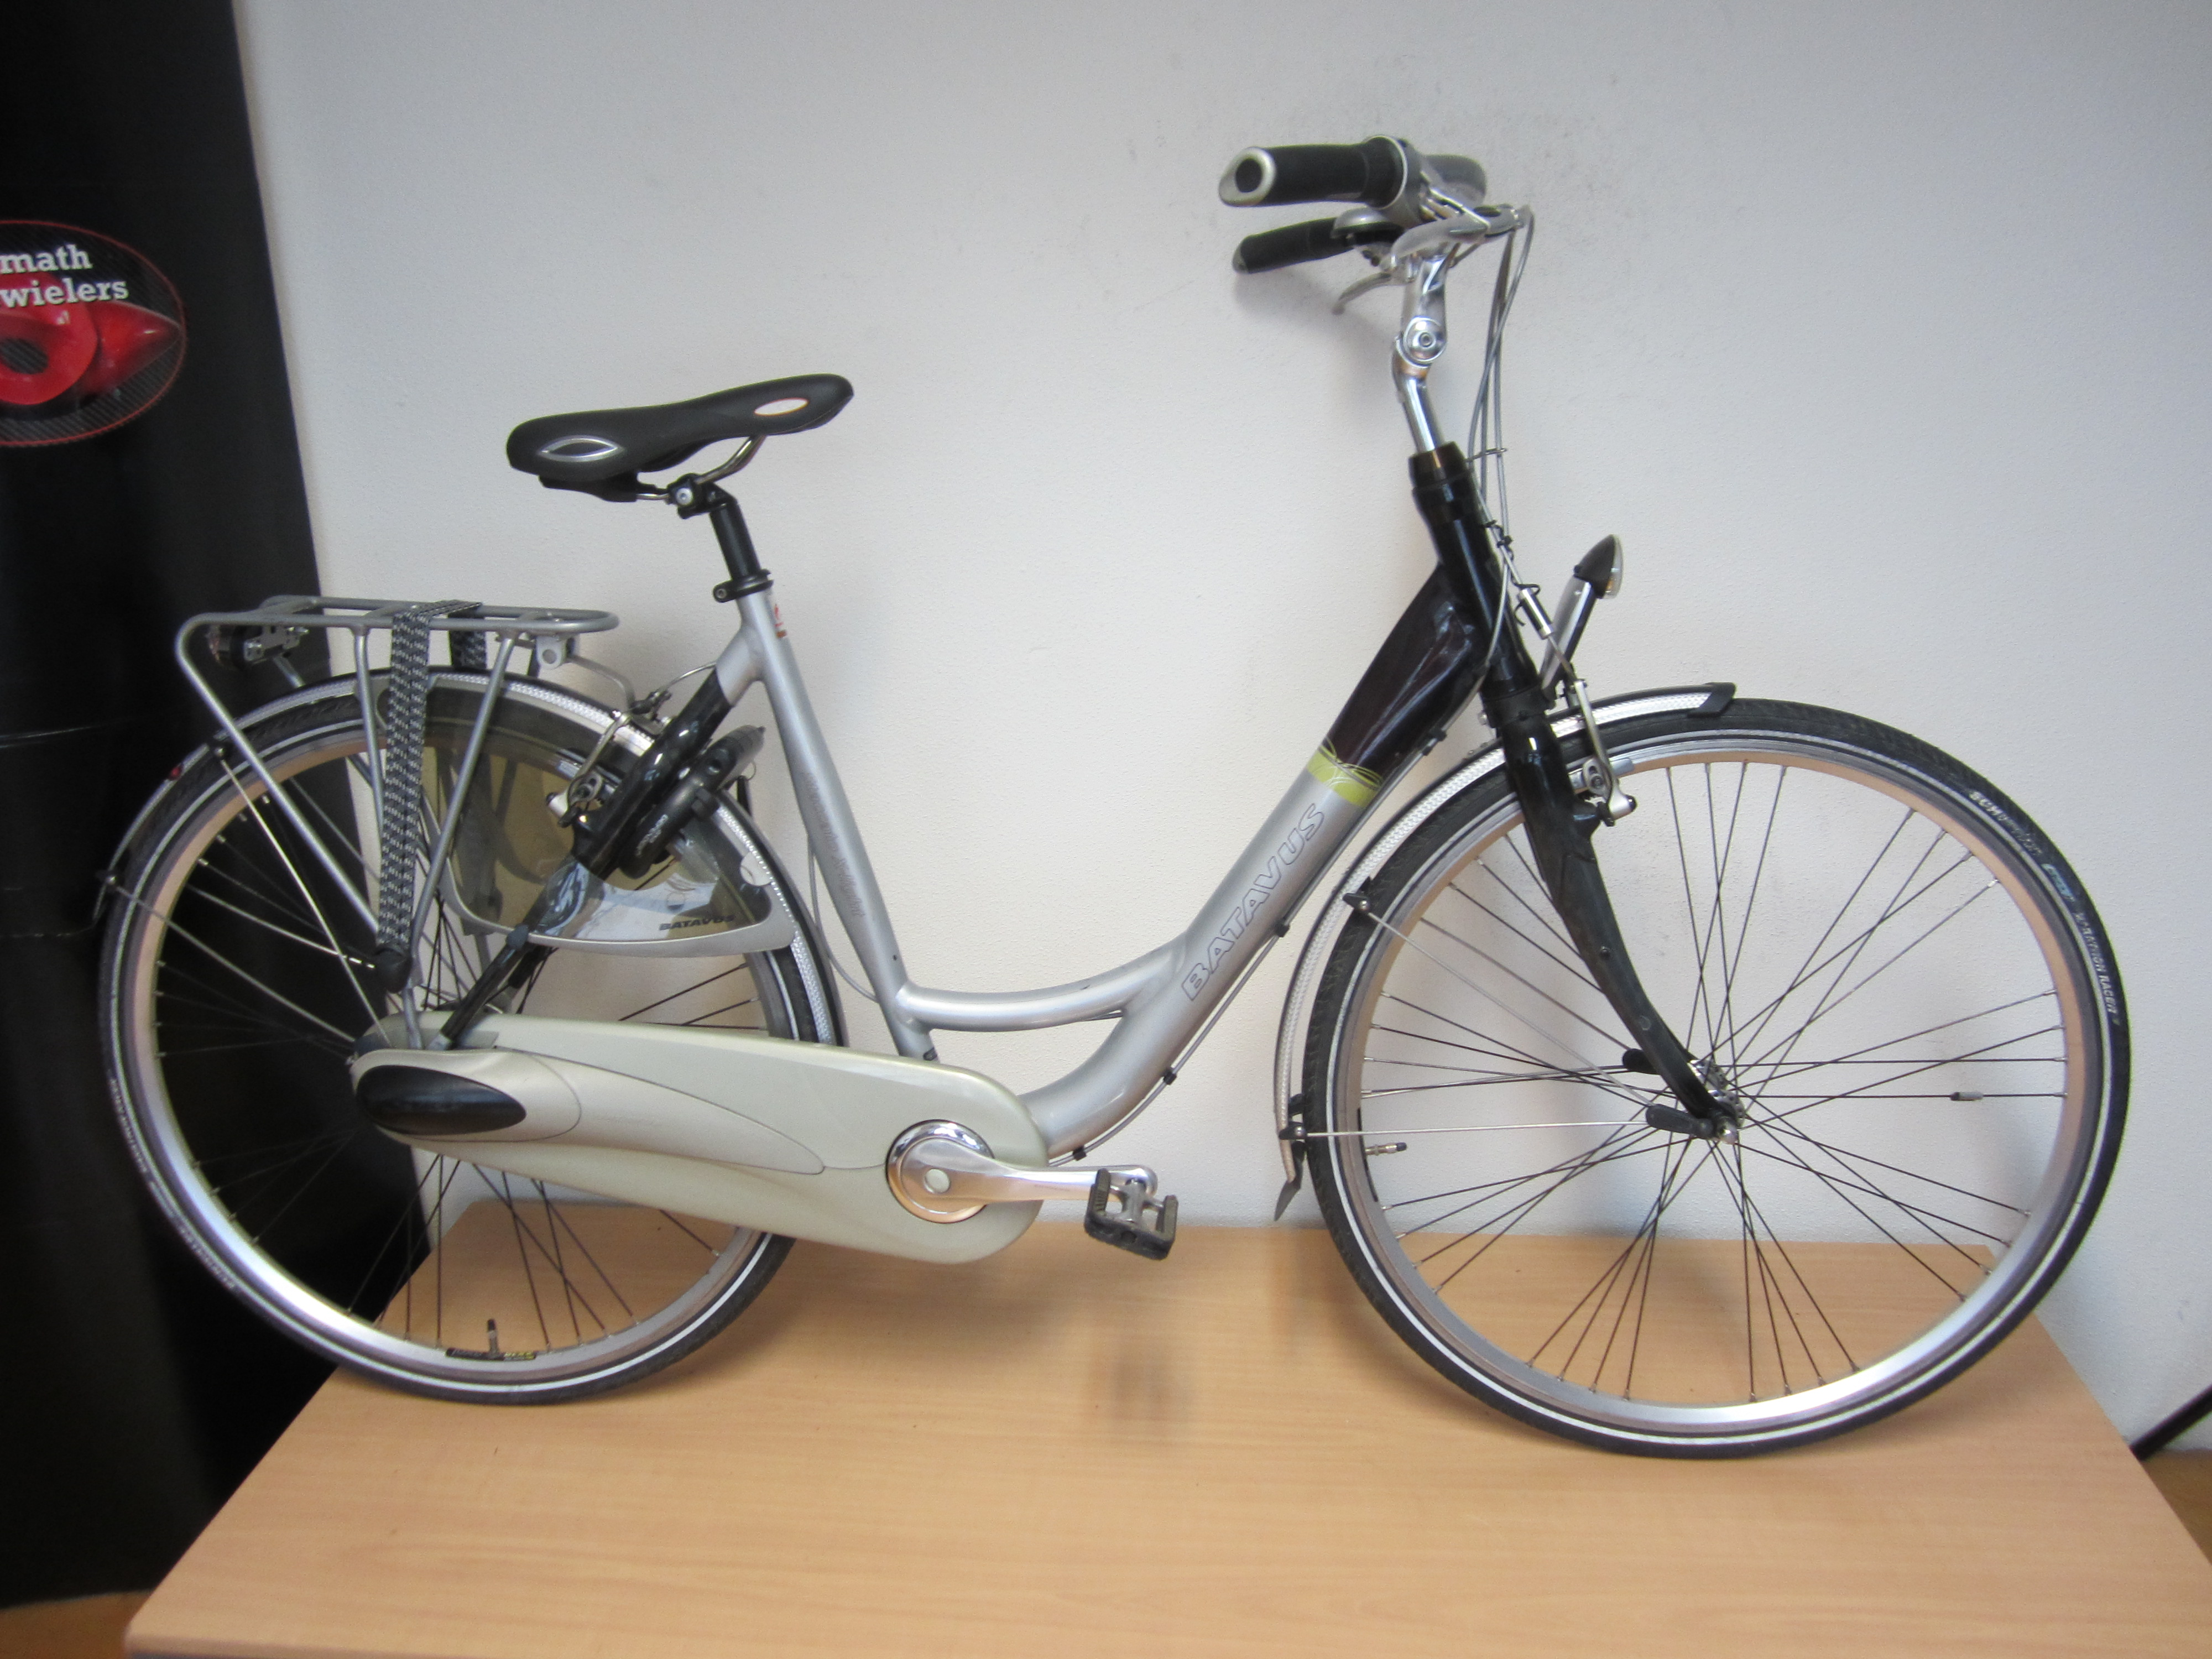 Onwijs Batavus Staccato Carbon damesfiets twv 999 euro – hybridstore EP-49